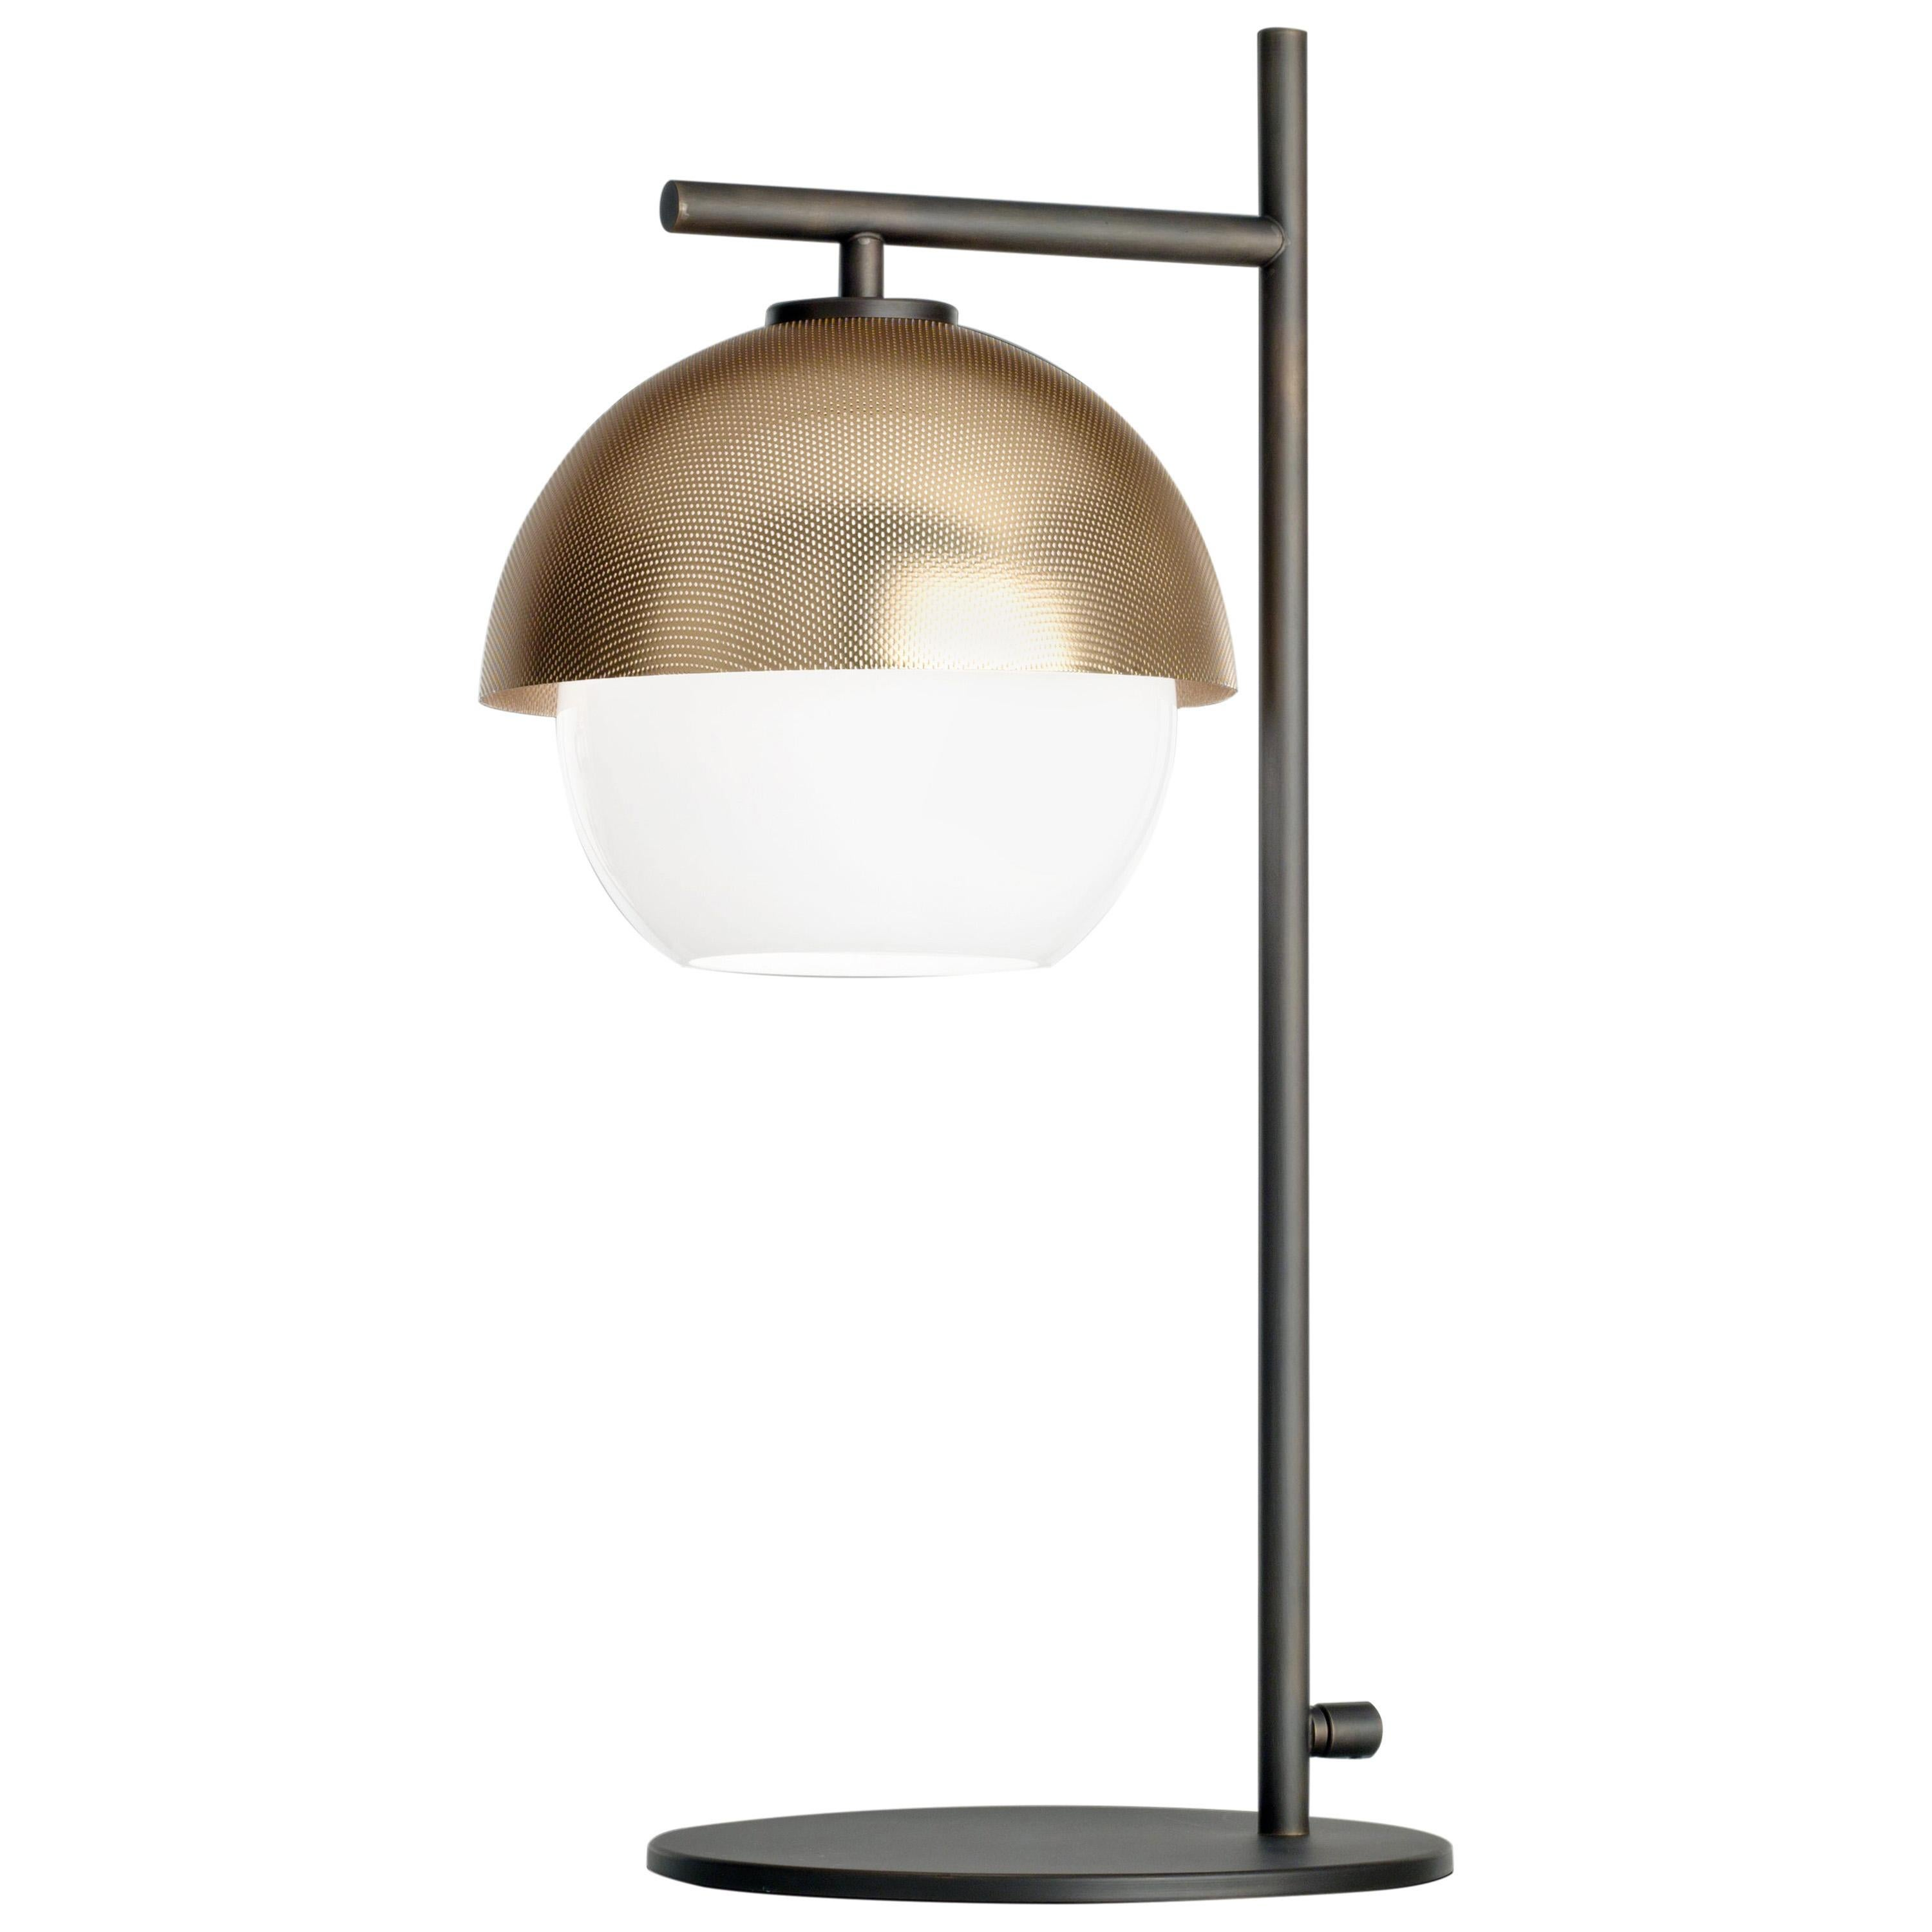 VeniceM Urban Table Light in Dark Burnished Brass by Massimo Tonetto